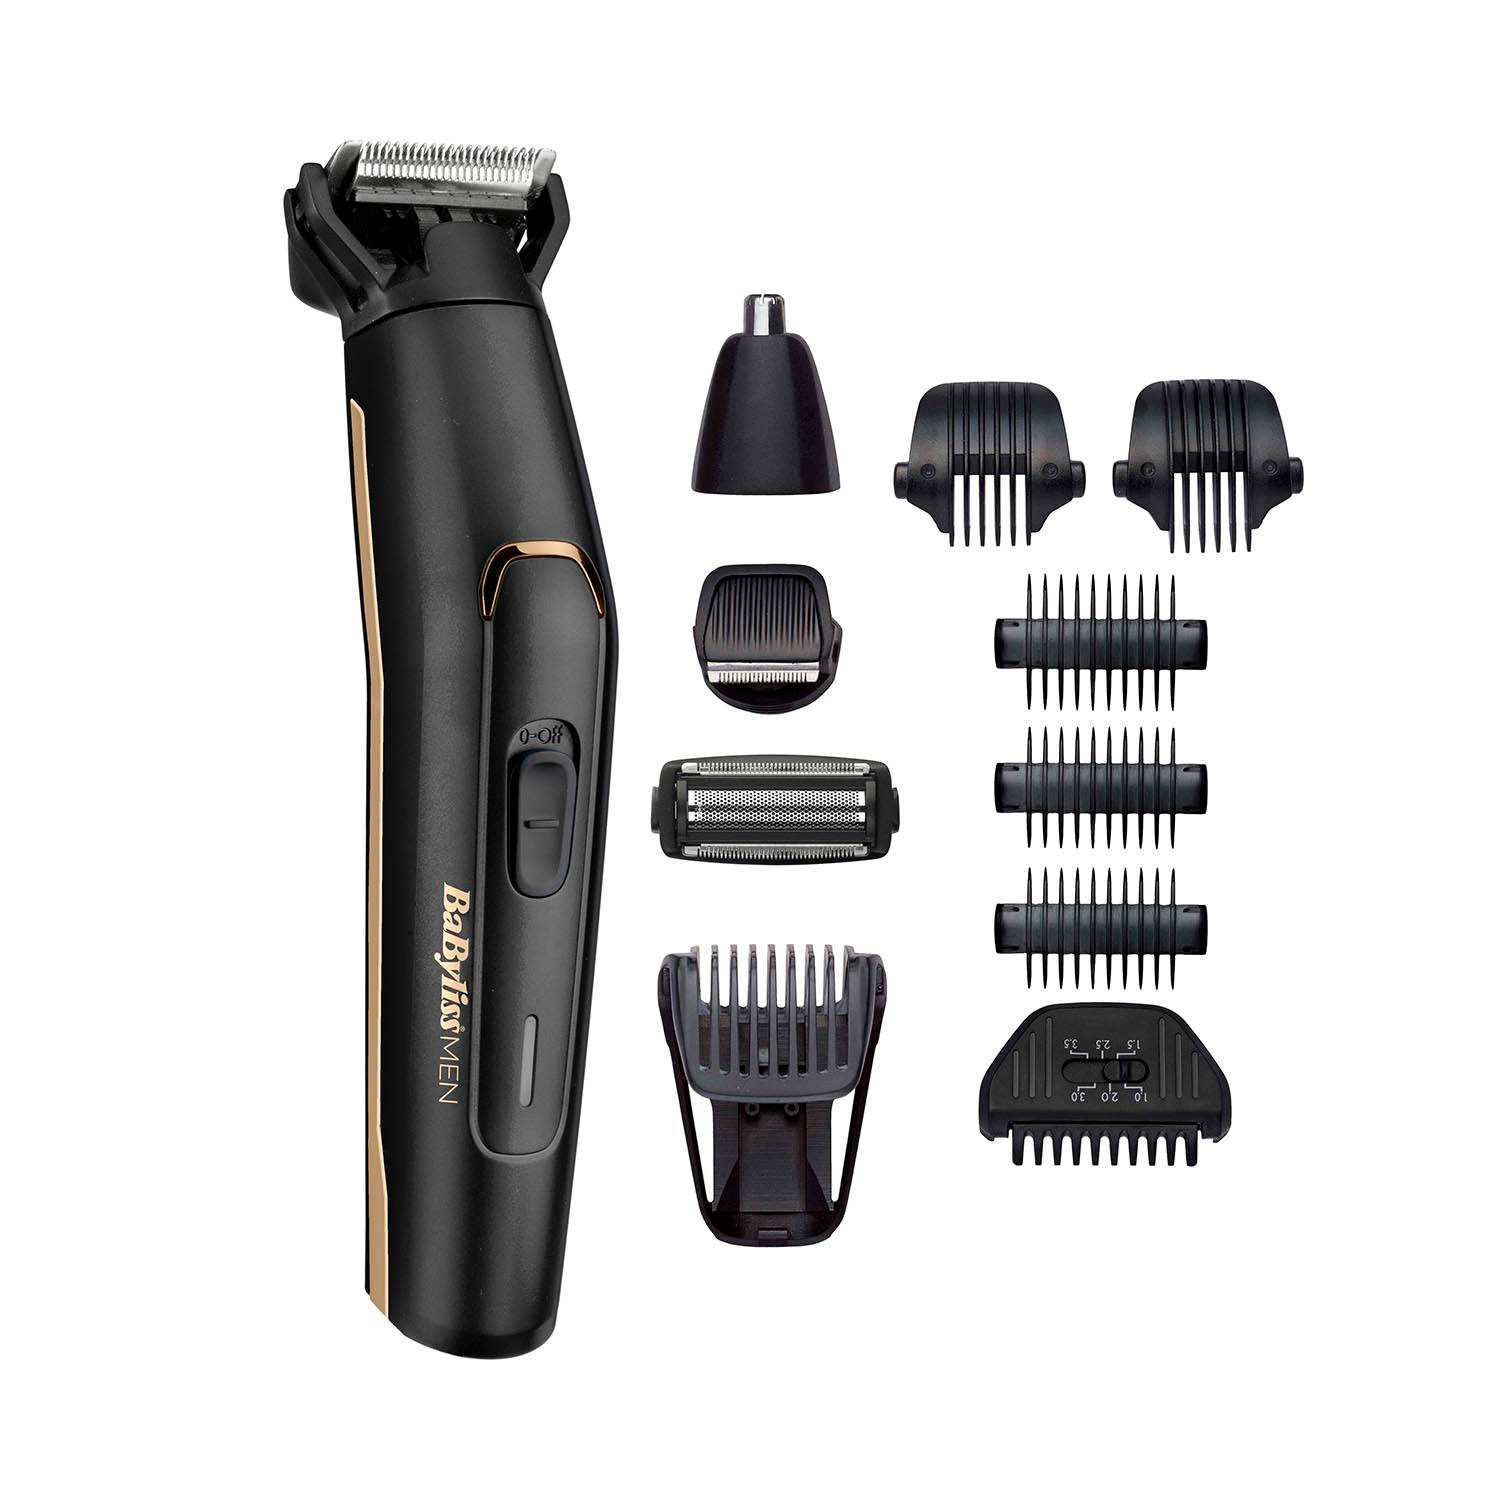 Korting Babylissmen Multigroomer 11 in 1 Mt860e